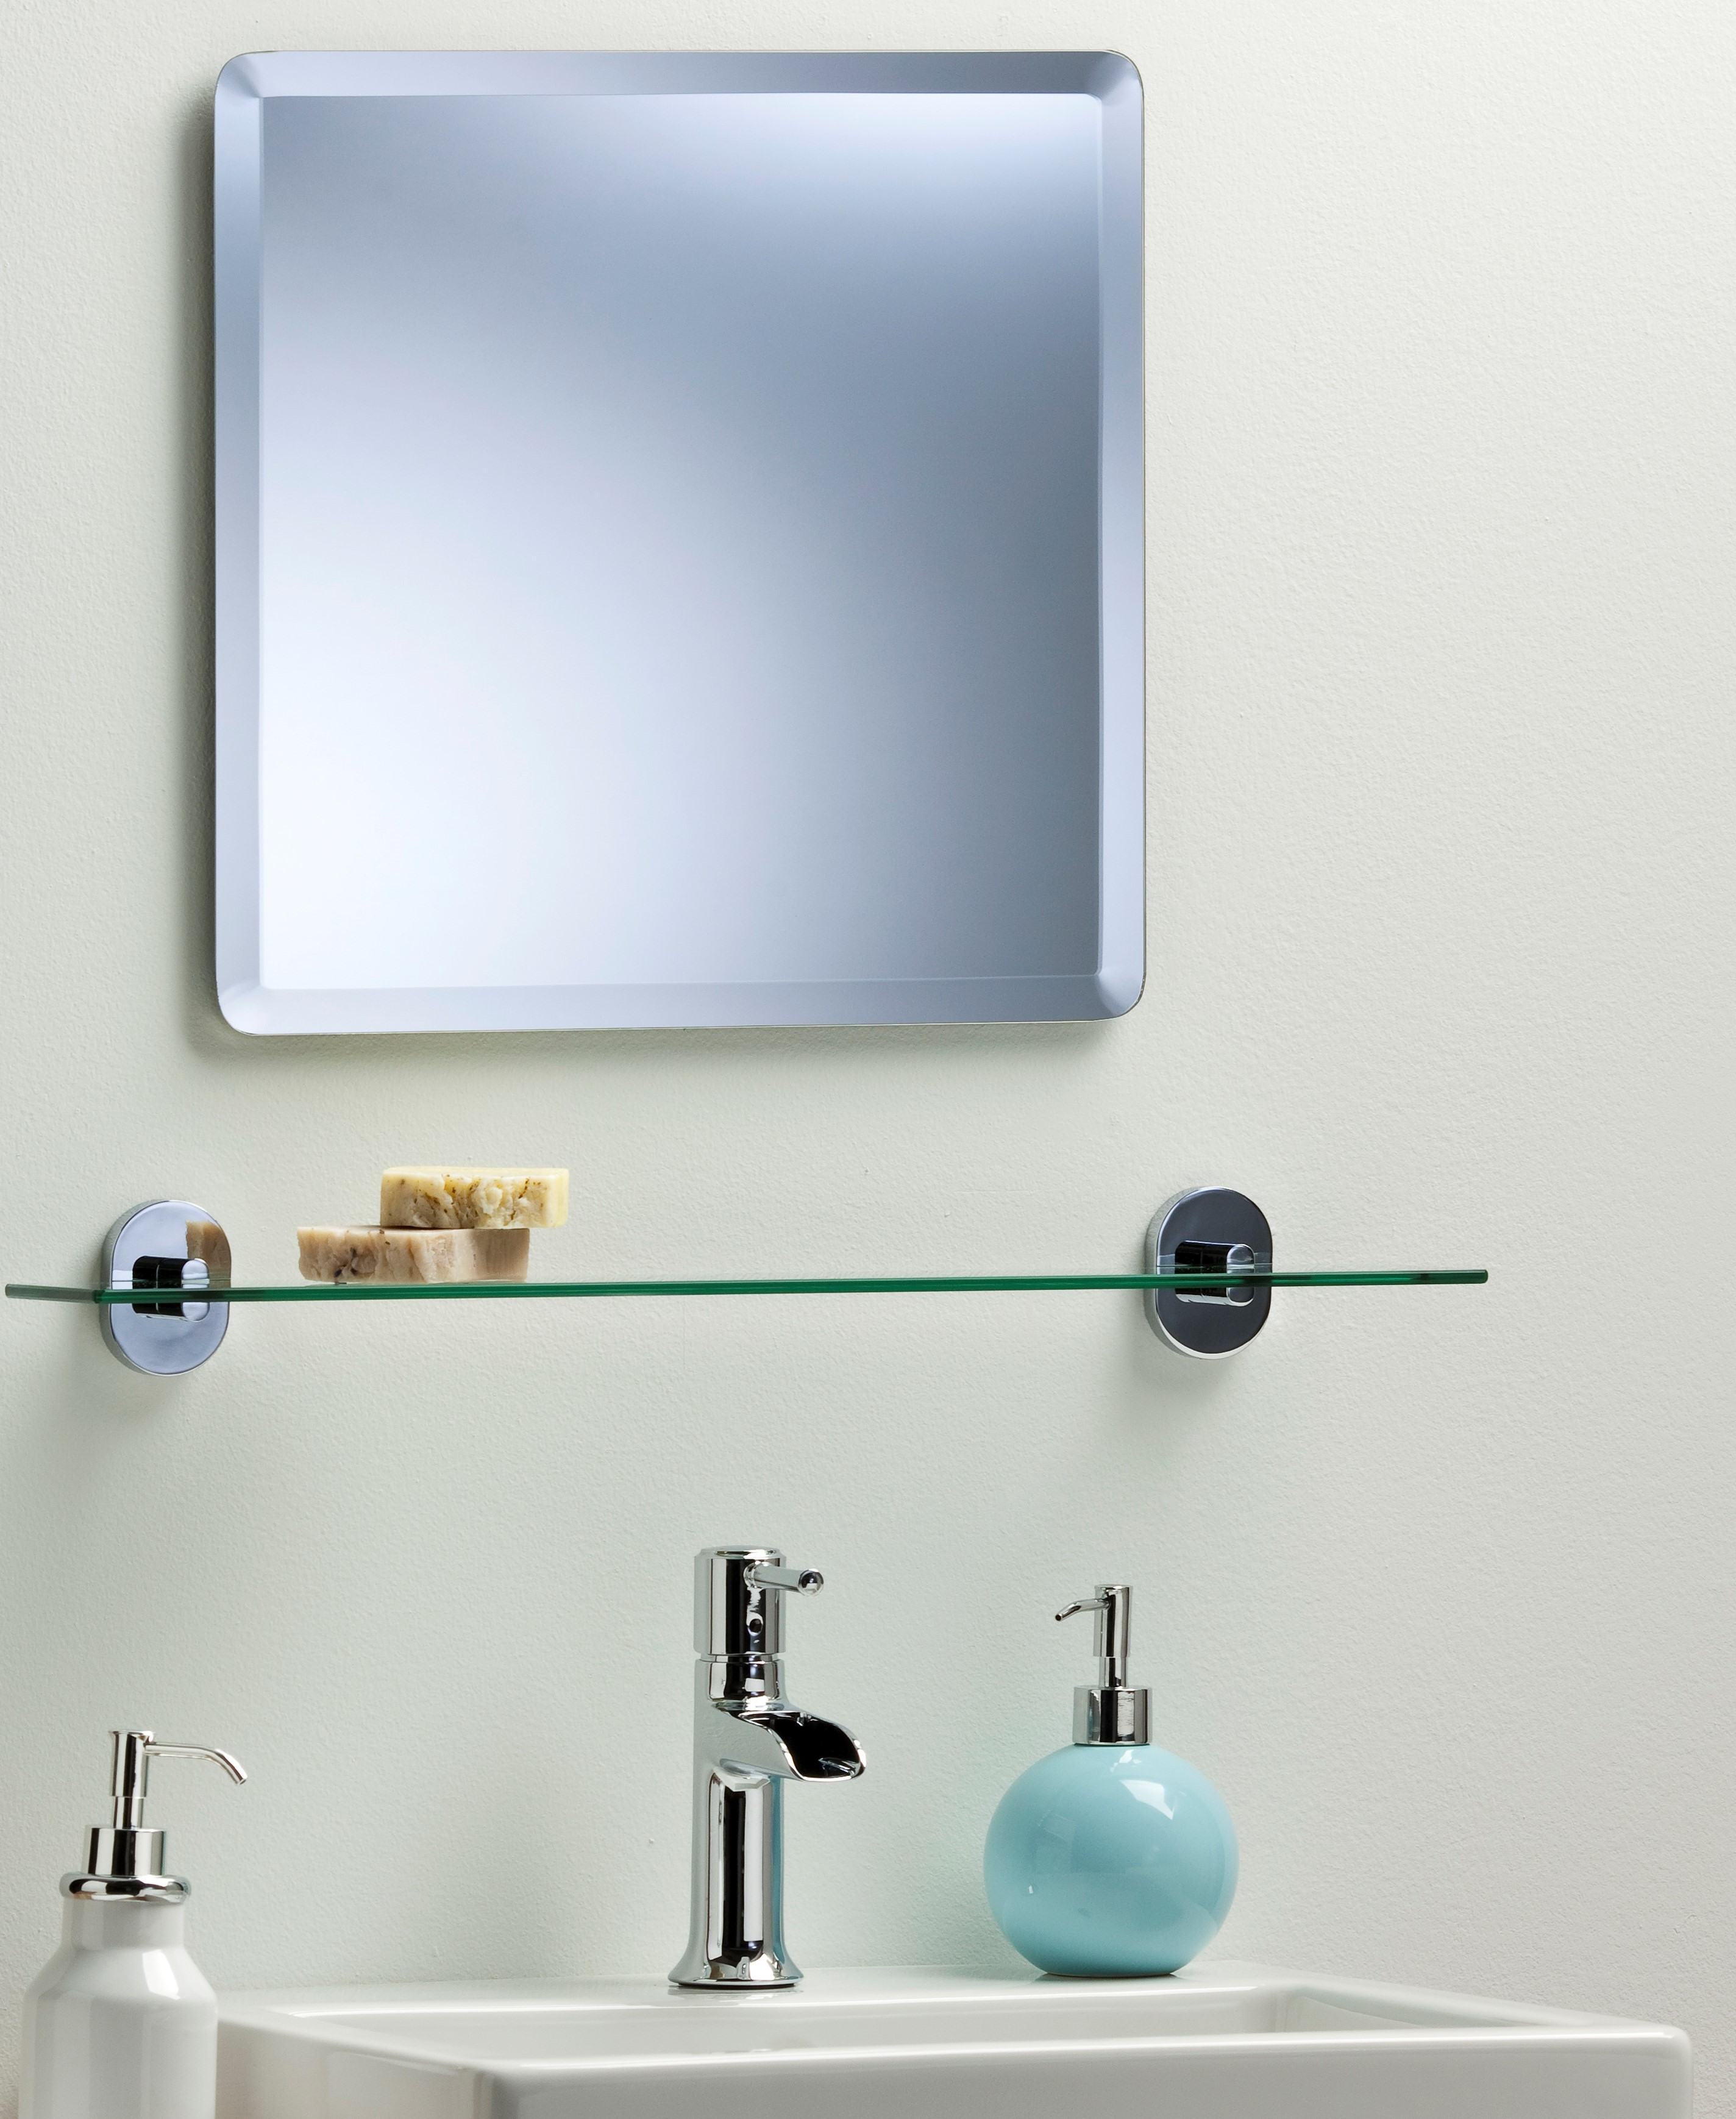 Bathroom wall mirror simple design square with bevel frameless plain ebay Neue design bathroom mirror